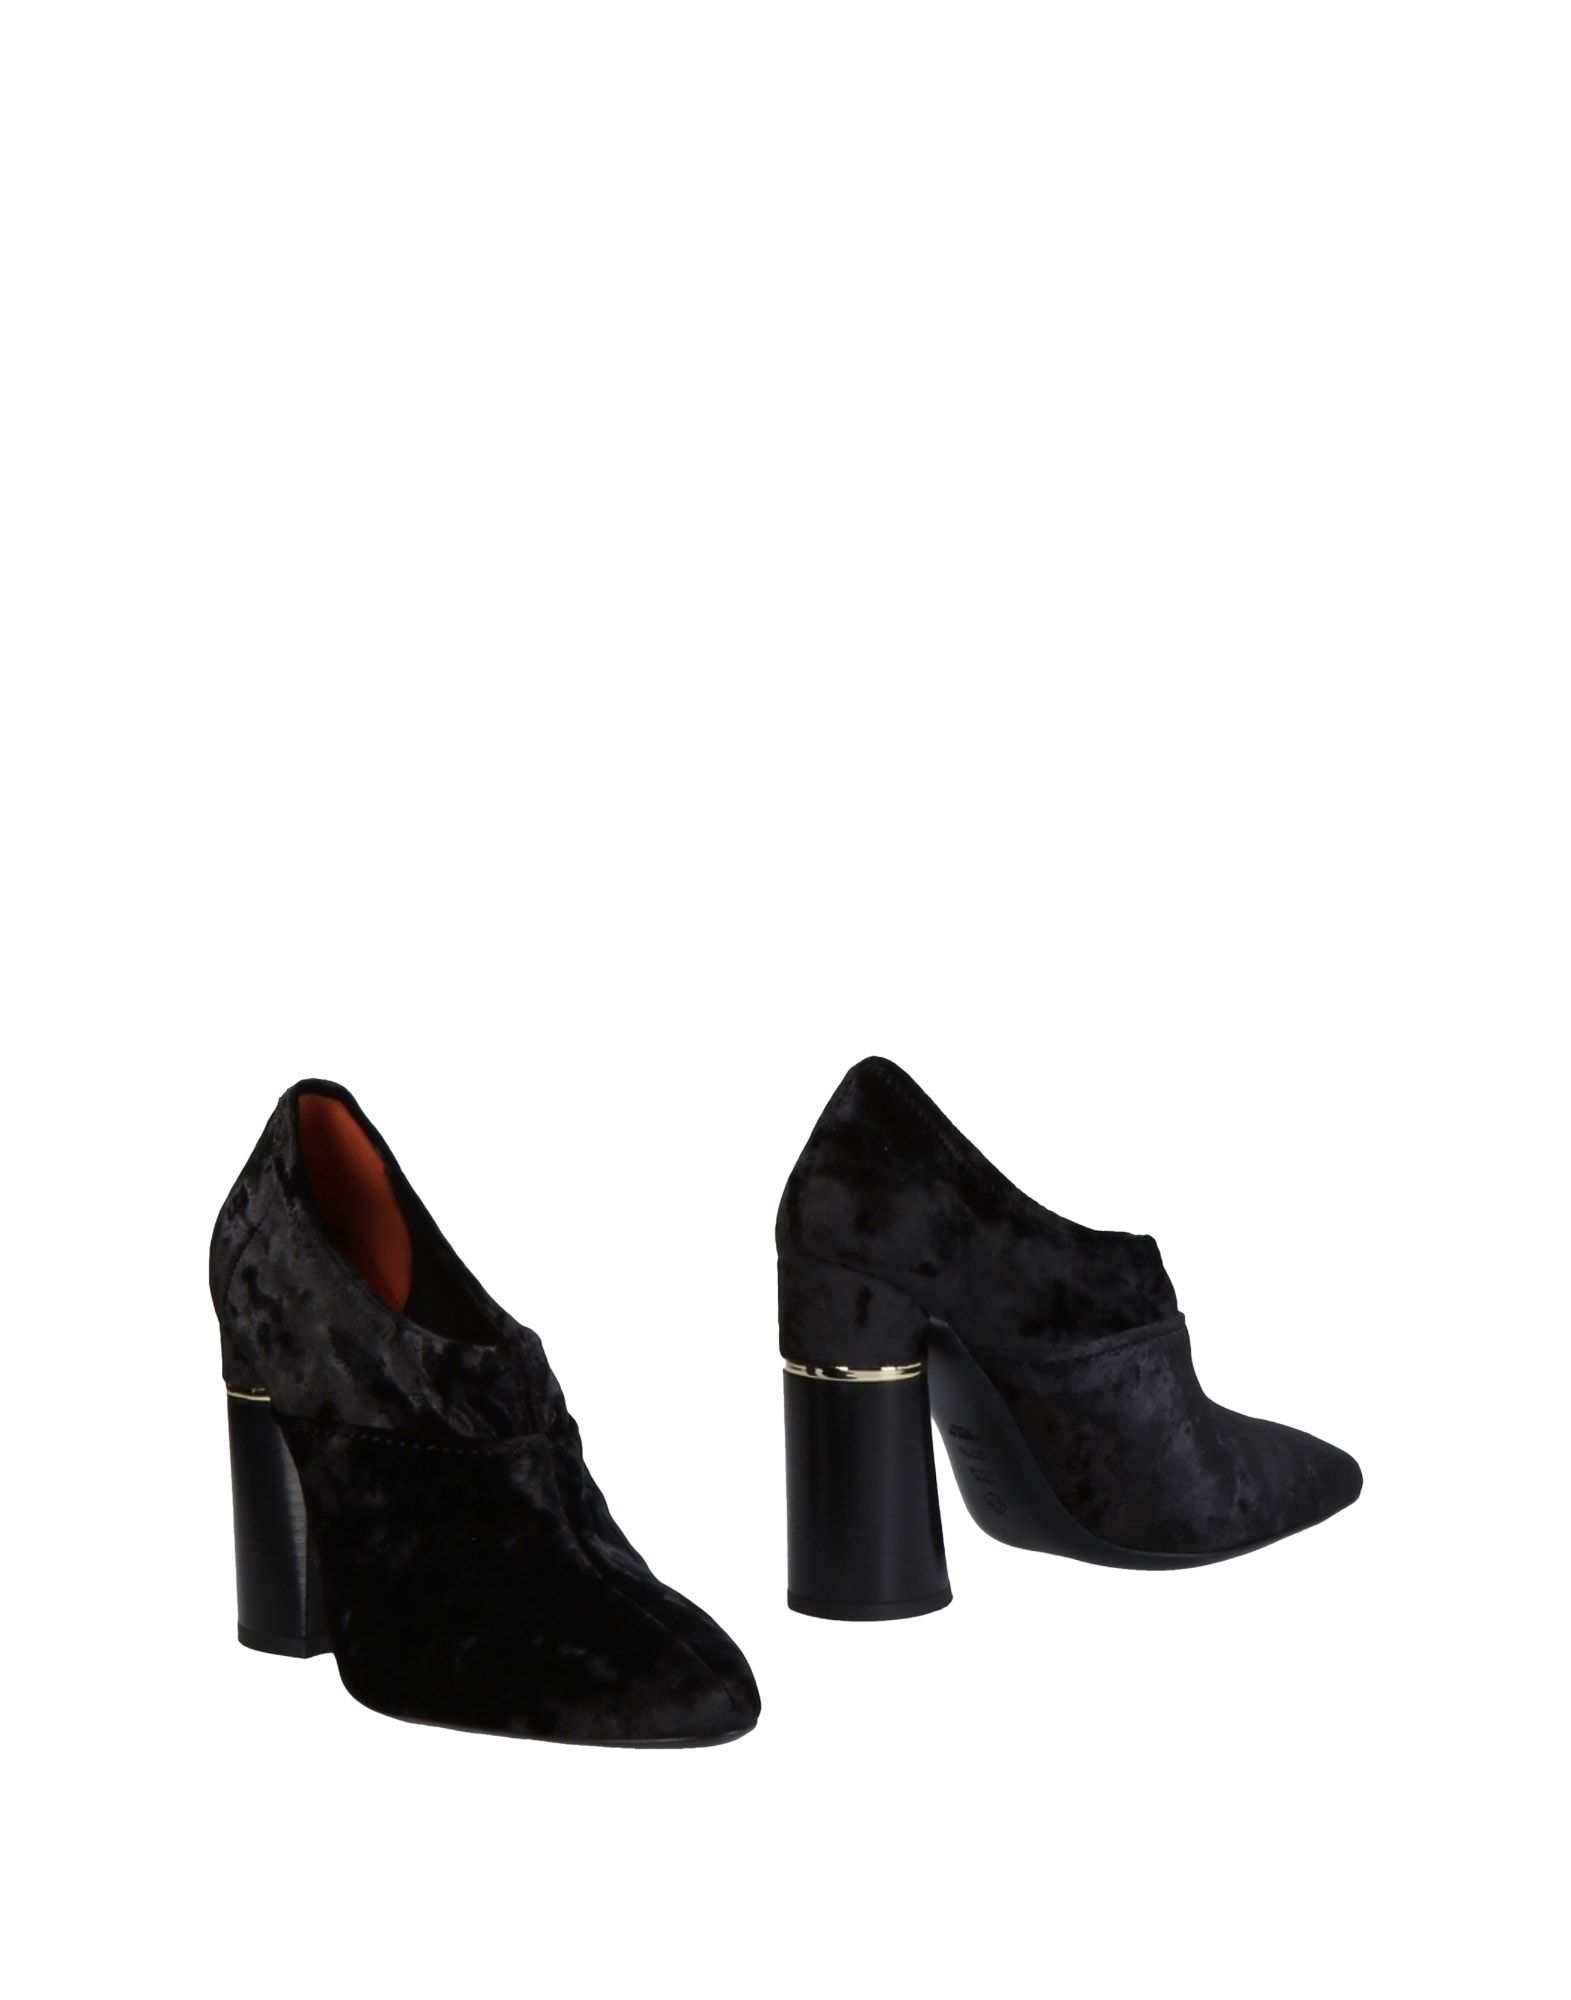 Bottine 3.1 Phillip Lim Femme - Bottines 3.1 Phillip Lim Noir Confortable et belle